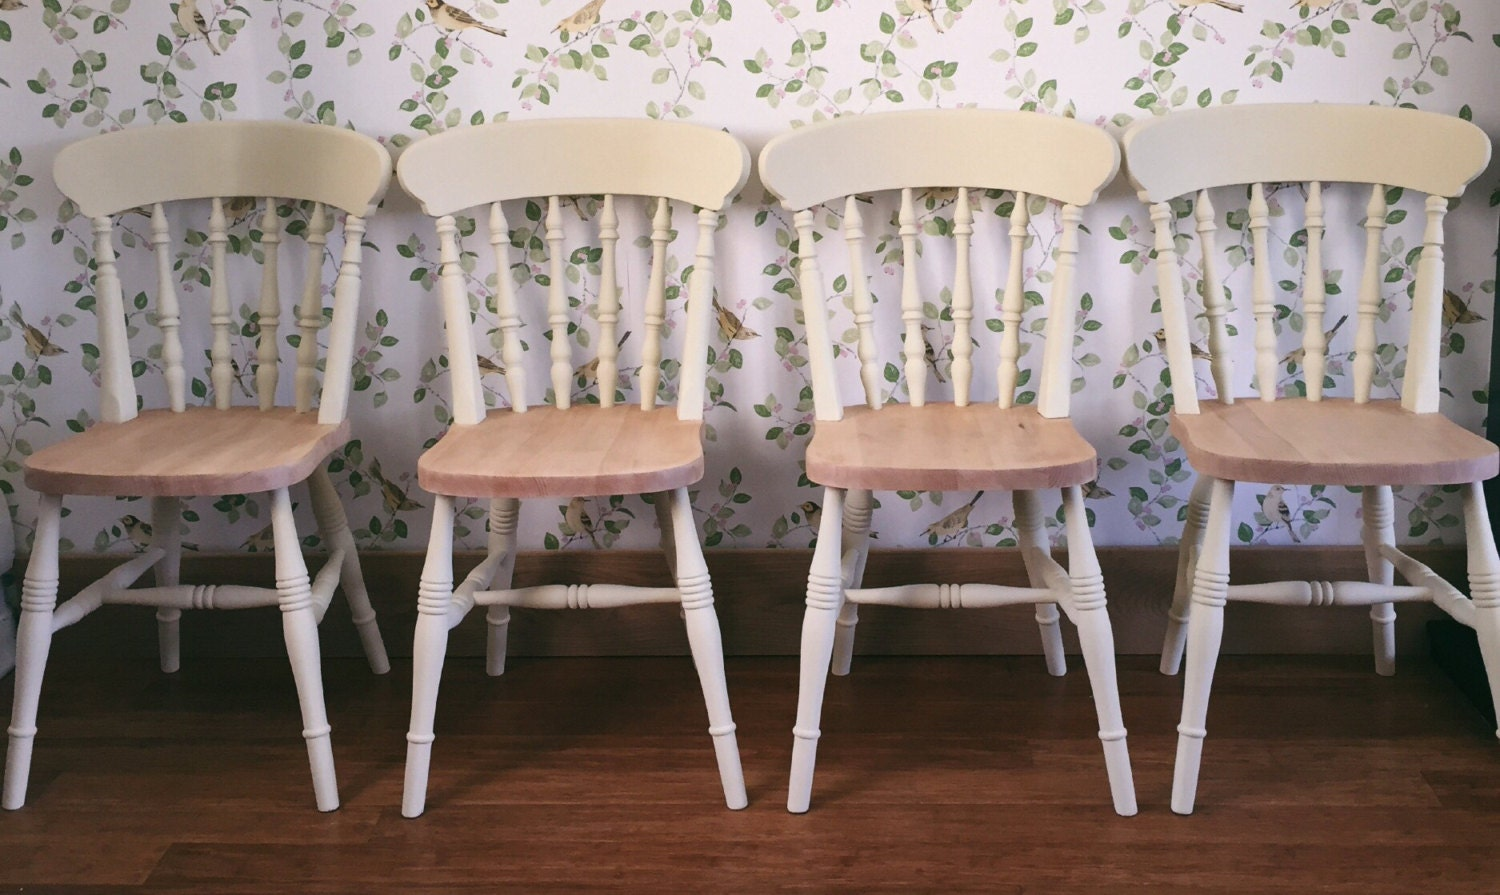 Farmhouse Chairs Four Solid Pine Hand Painted Shabby Chic Kitchen Dining Chairs  Sourced To Order